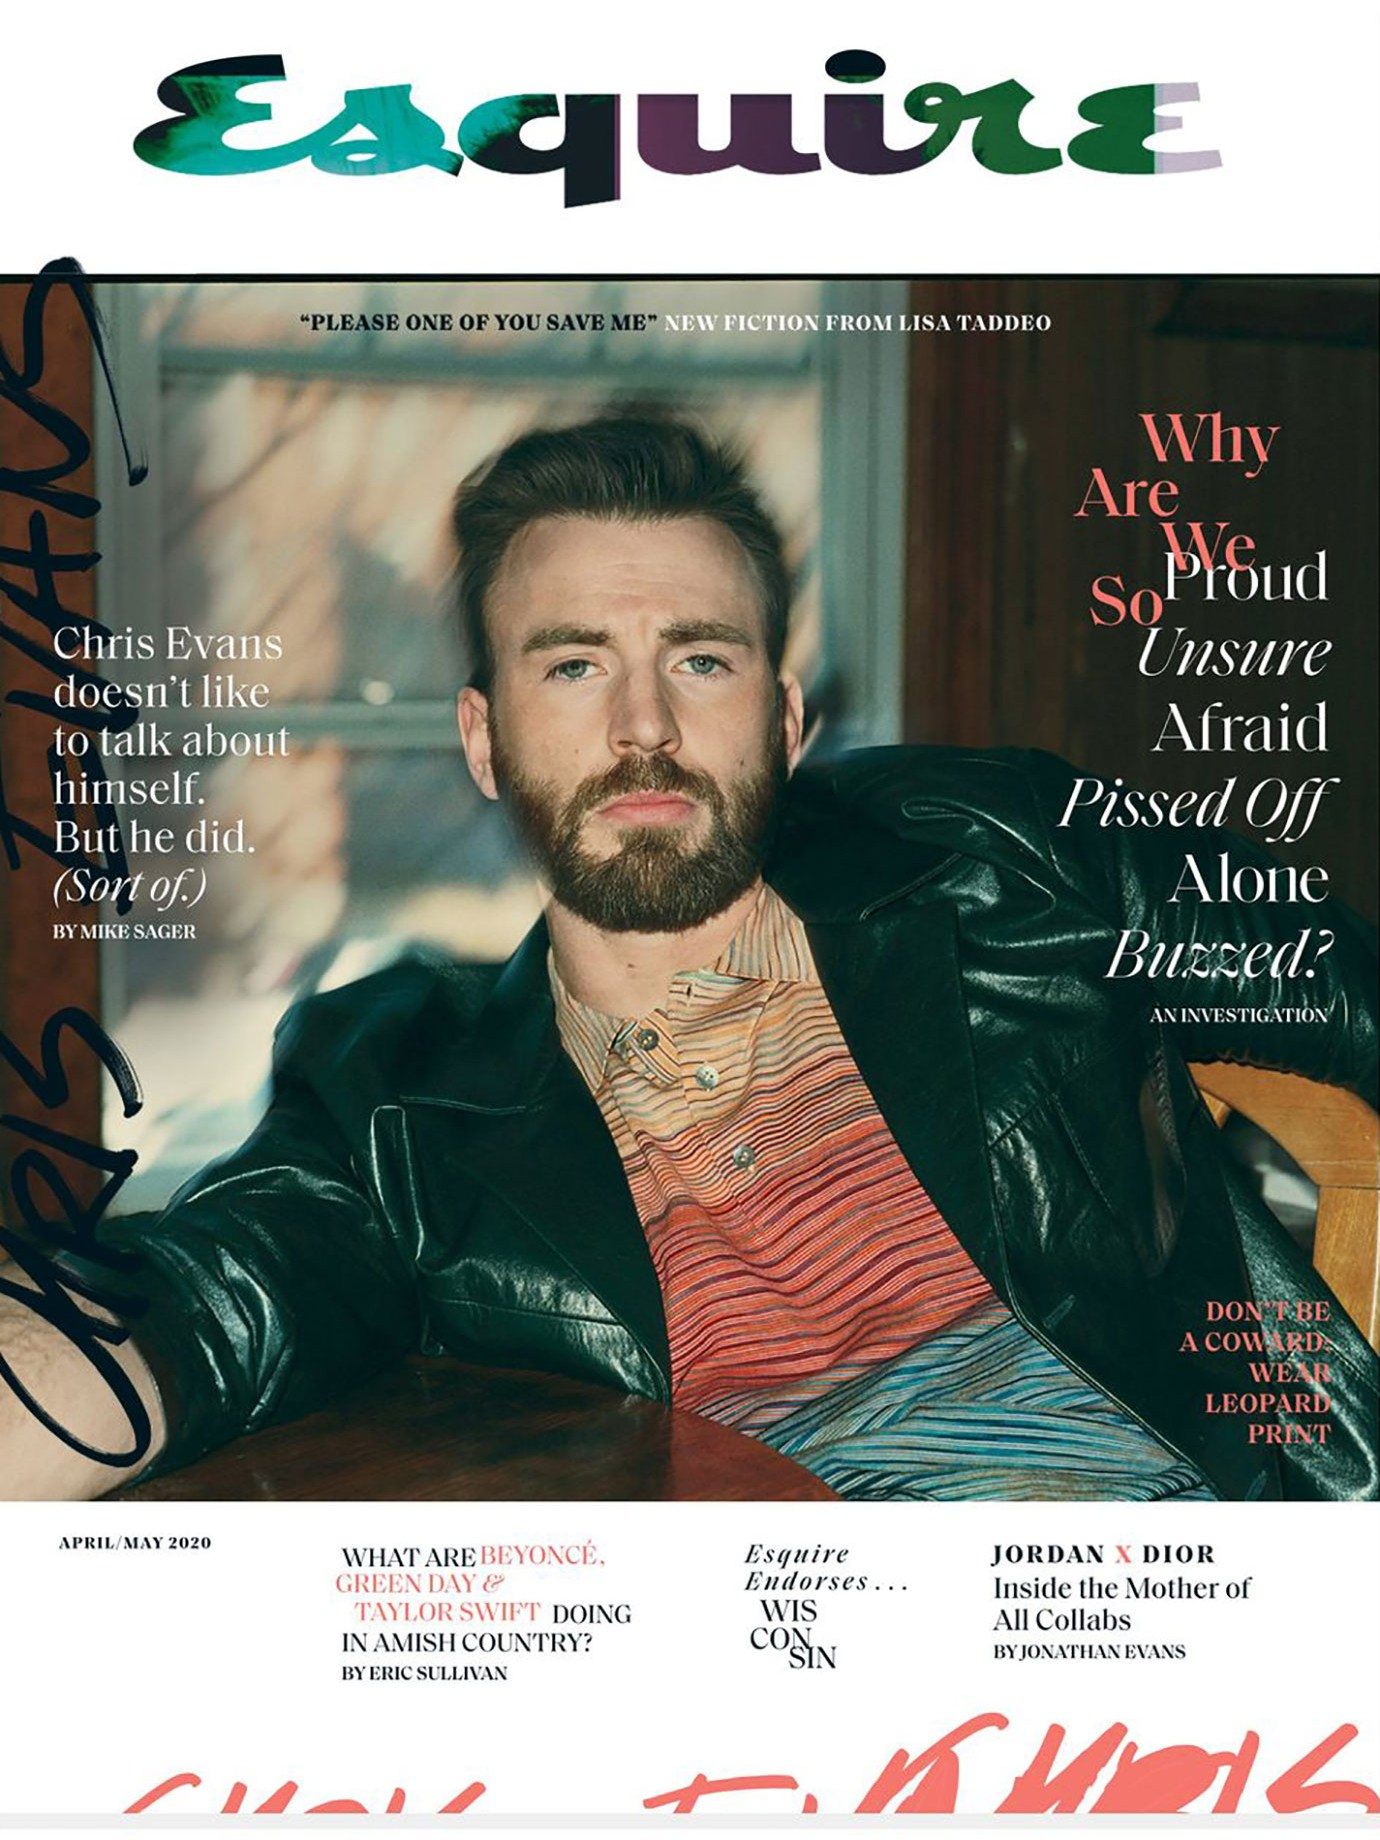 A cover of Esquire magazine with the portrait of a man on it.